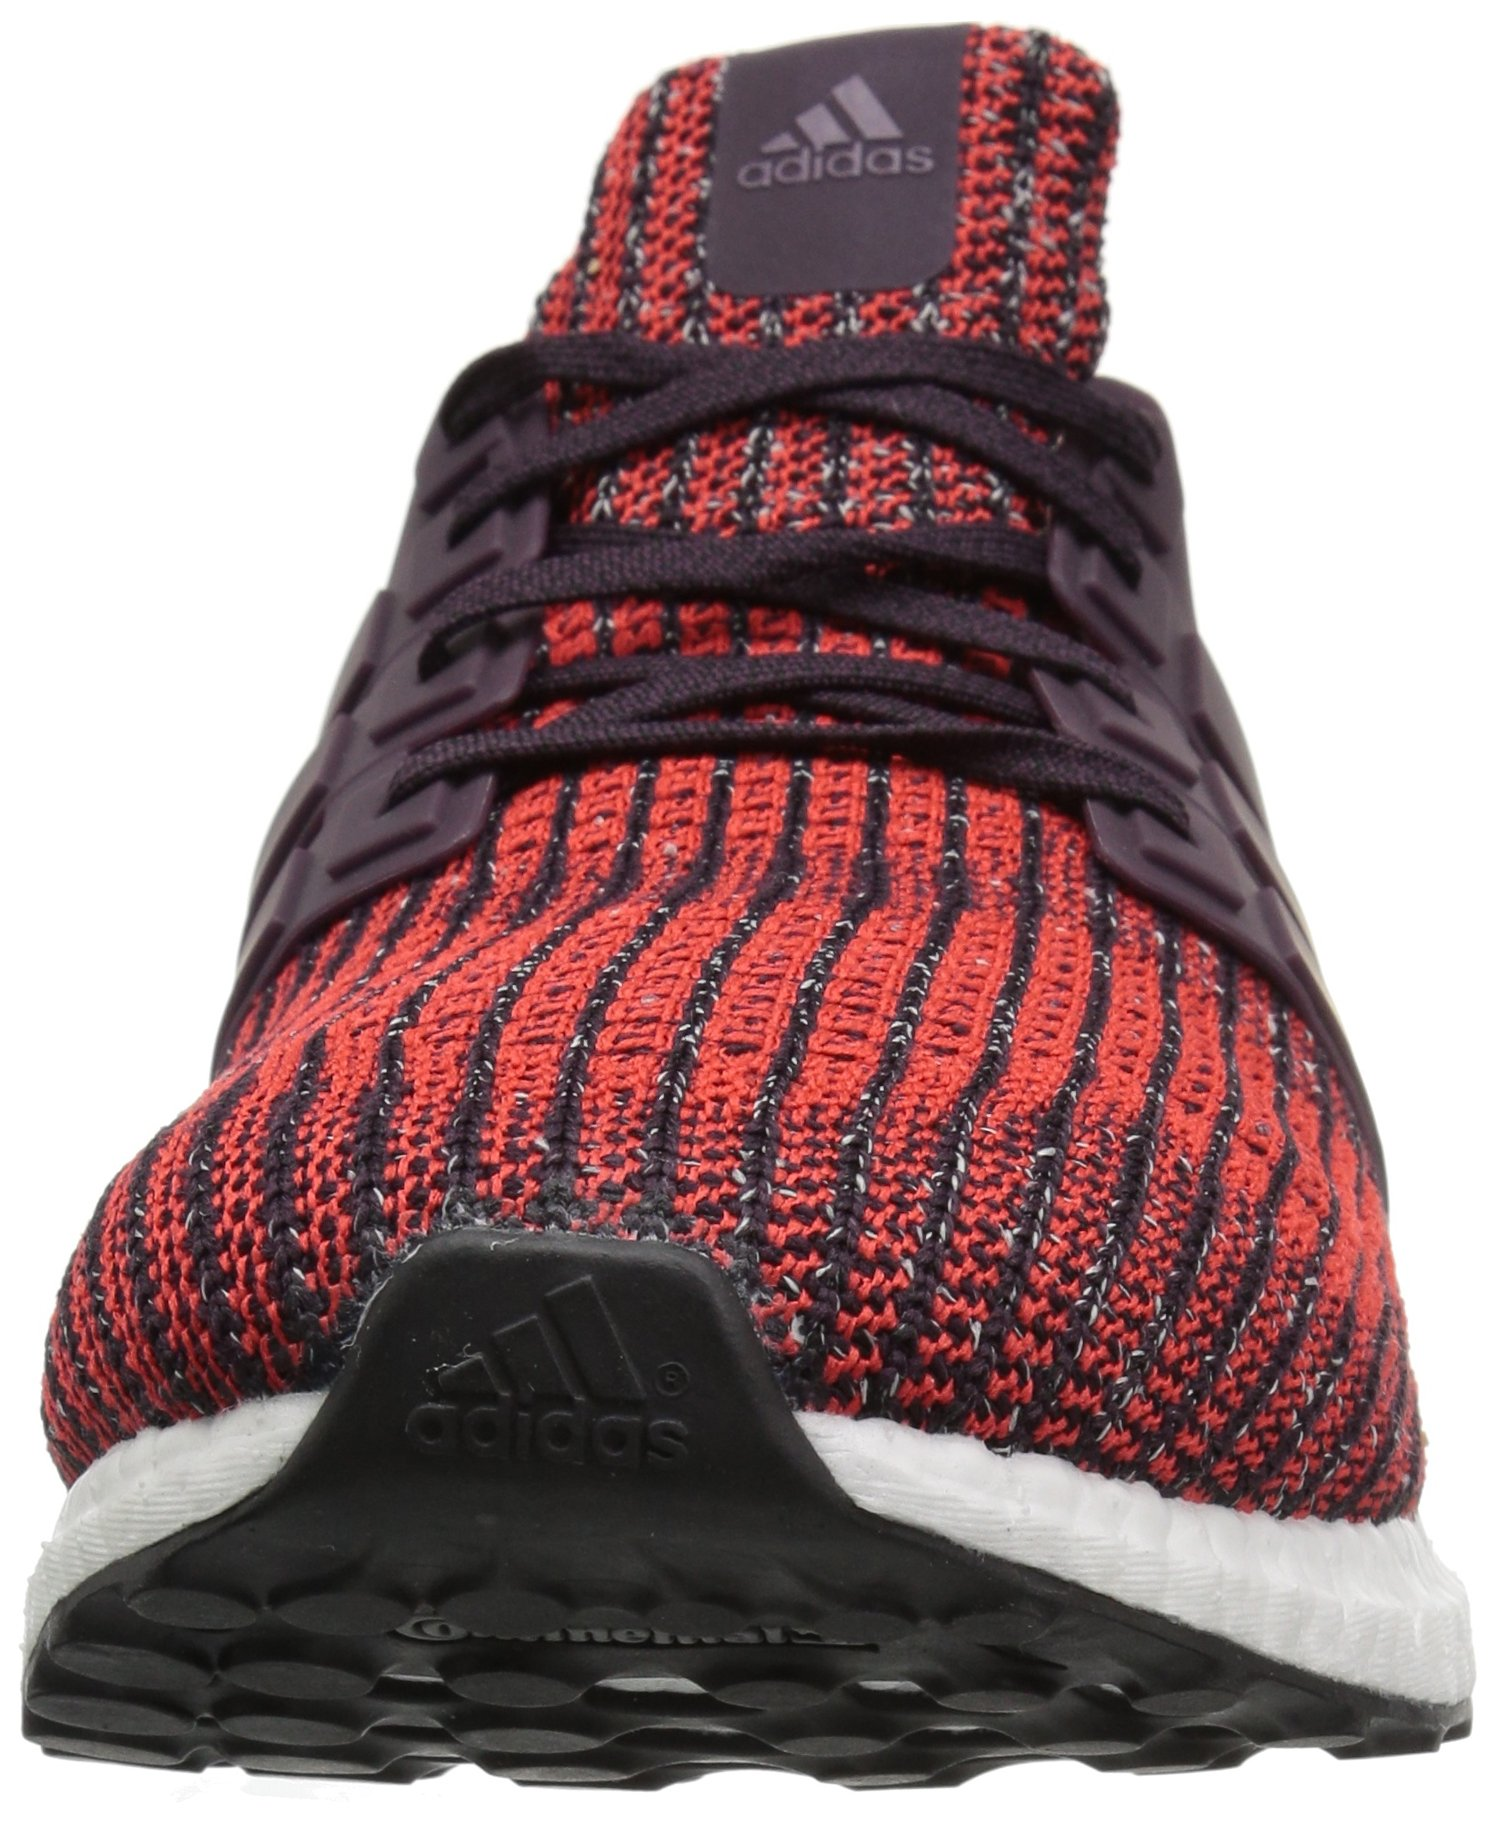 adidas Men's Ultraboost Road Running Shoe, Noble Red/Noble Red/Core Black, 5 M US by adidas (Image #4)